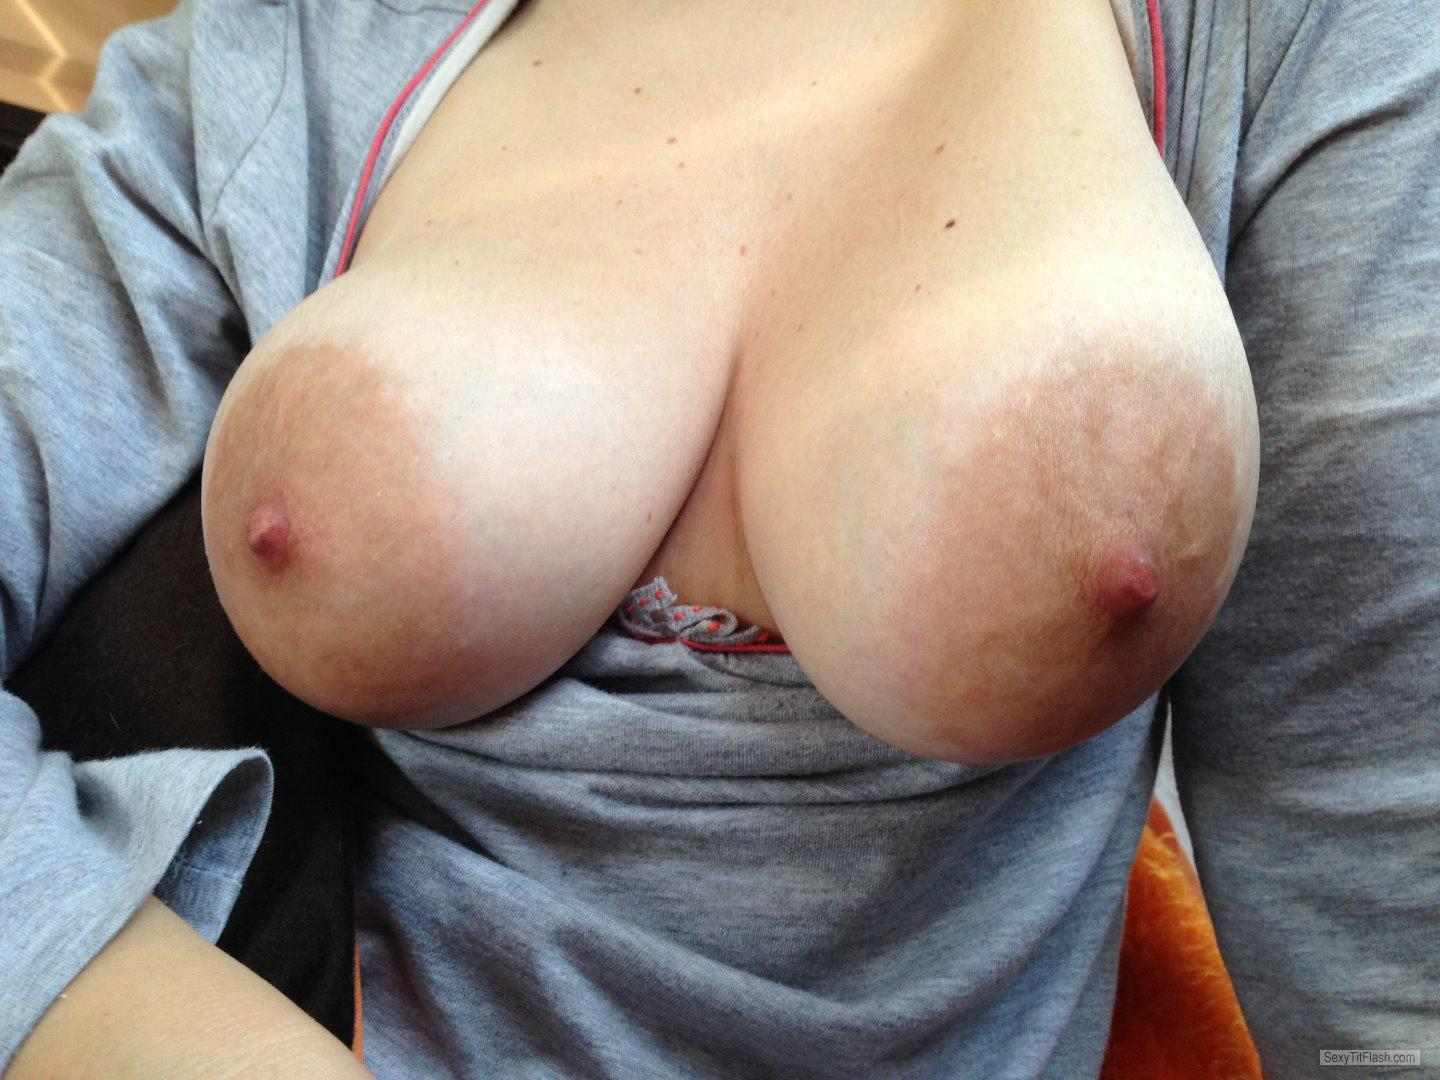 Tit Flash: Wife's Big Tits - Boobaliscious from United Kingdom